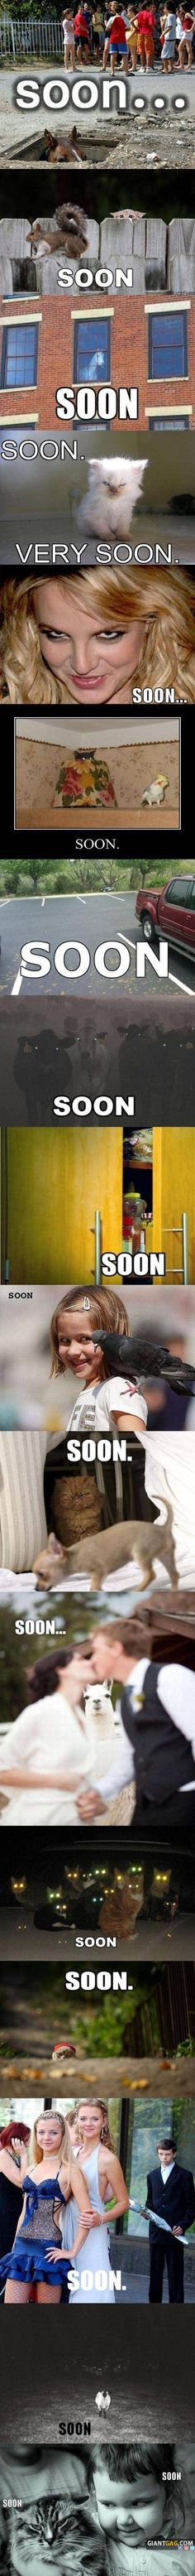 Soon (Compilation) - #animals #funny